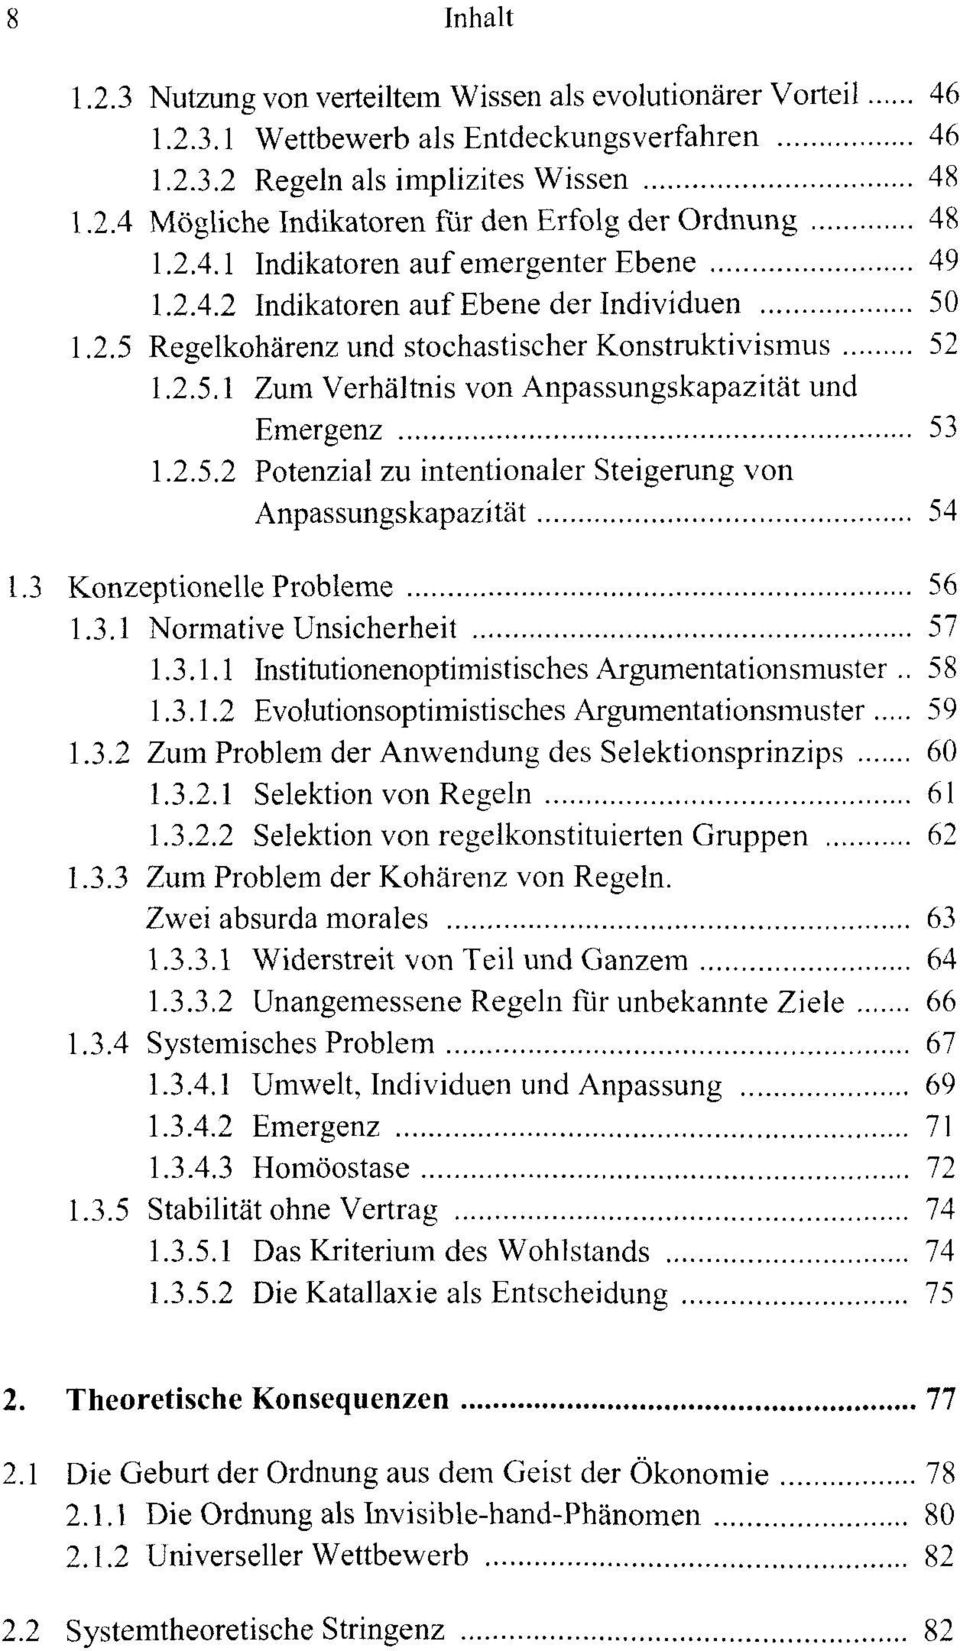 2.5.2 Potenzial zu intentionaler Steigerung von Anpassungskapazität 54 1.3 Konzeptionelle Probleme 56 1.3.1 Normative Unsicherheit 57 1.3.1.1 Institutionenoptimistisches Argumentationsmuster.. 58 1.3.1.2 Evolutionsoptimistisches Argumentationsmuster 59 1.